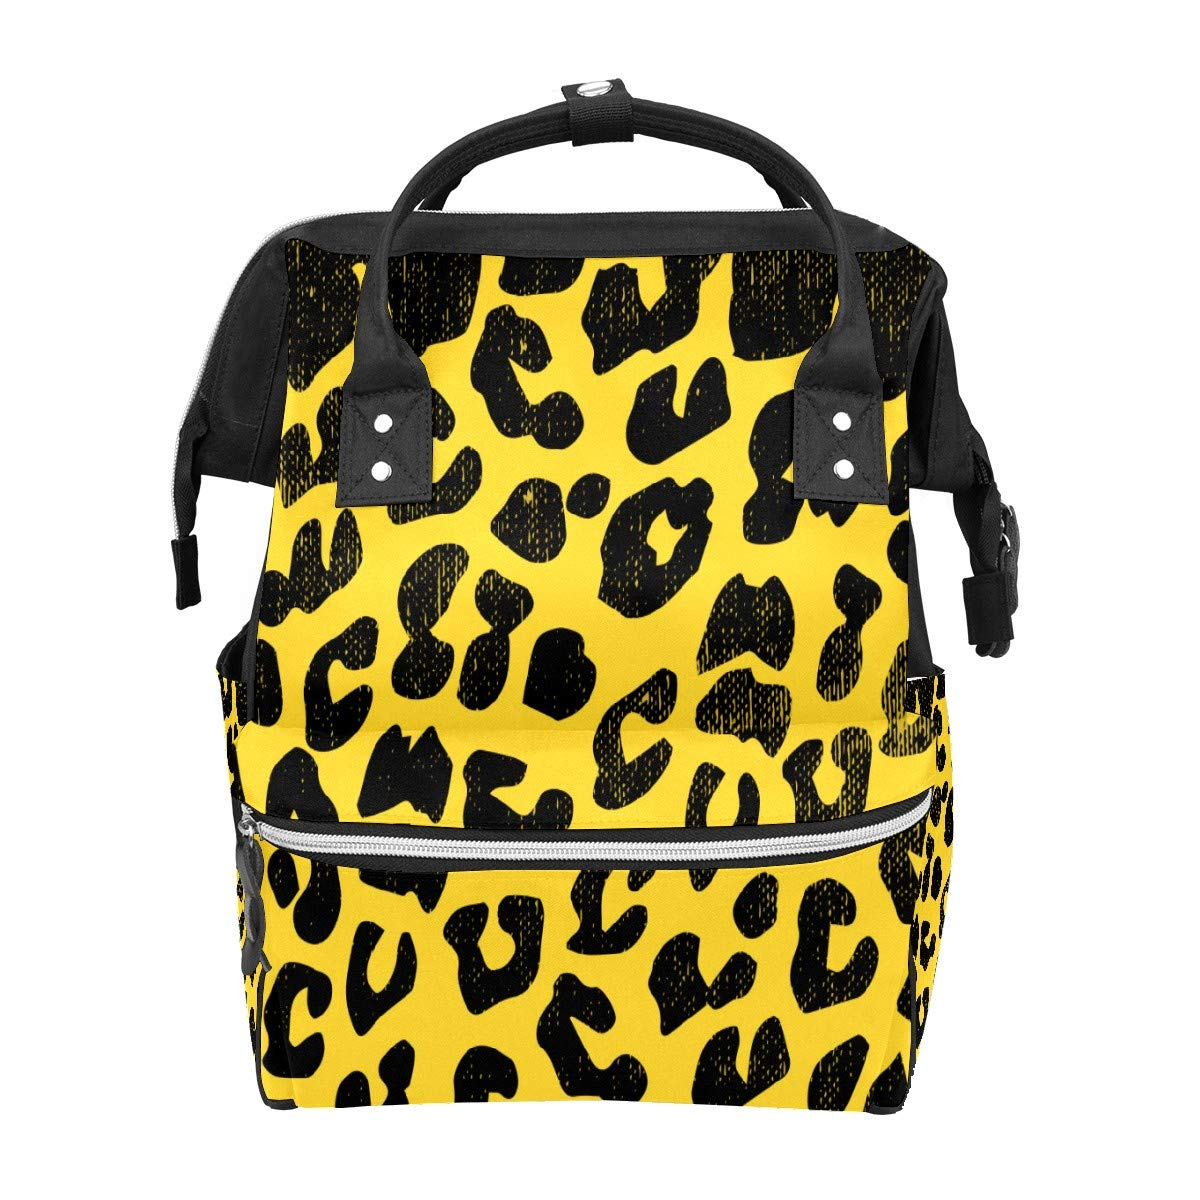 Diaper Bag Backpack Leopard Print with Texture Multifunction Travel Back Pack Baby Changing Bags Large Capacity Waterproof Stylish